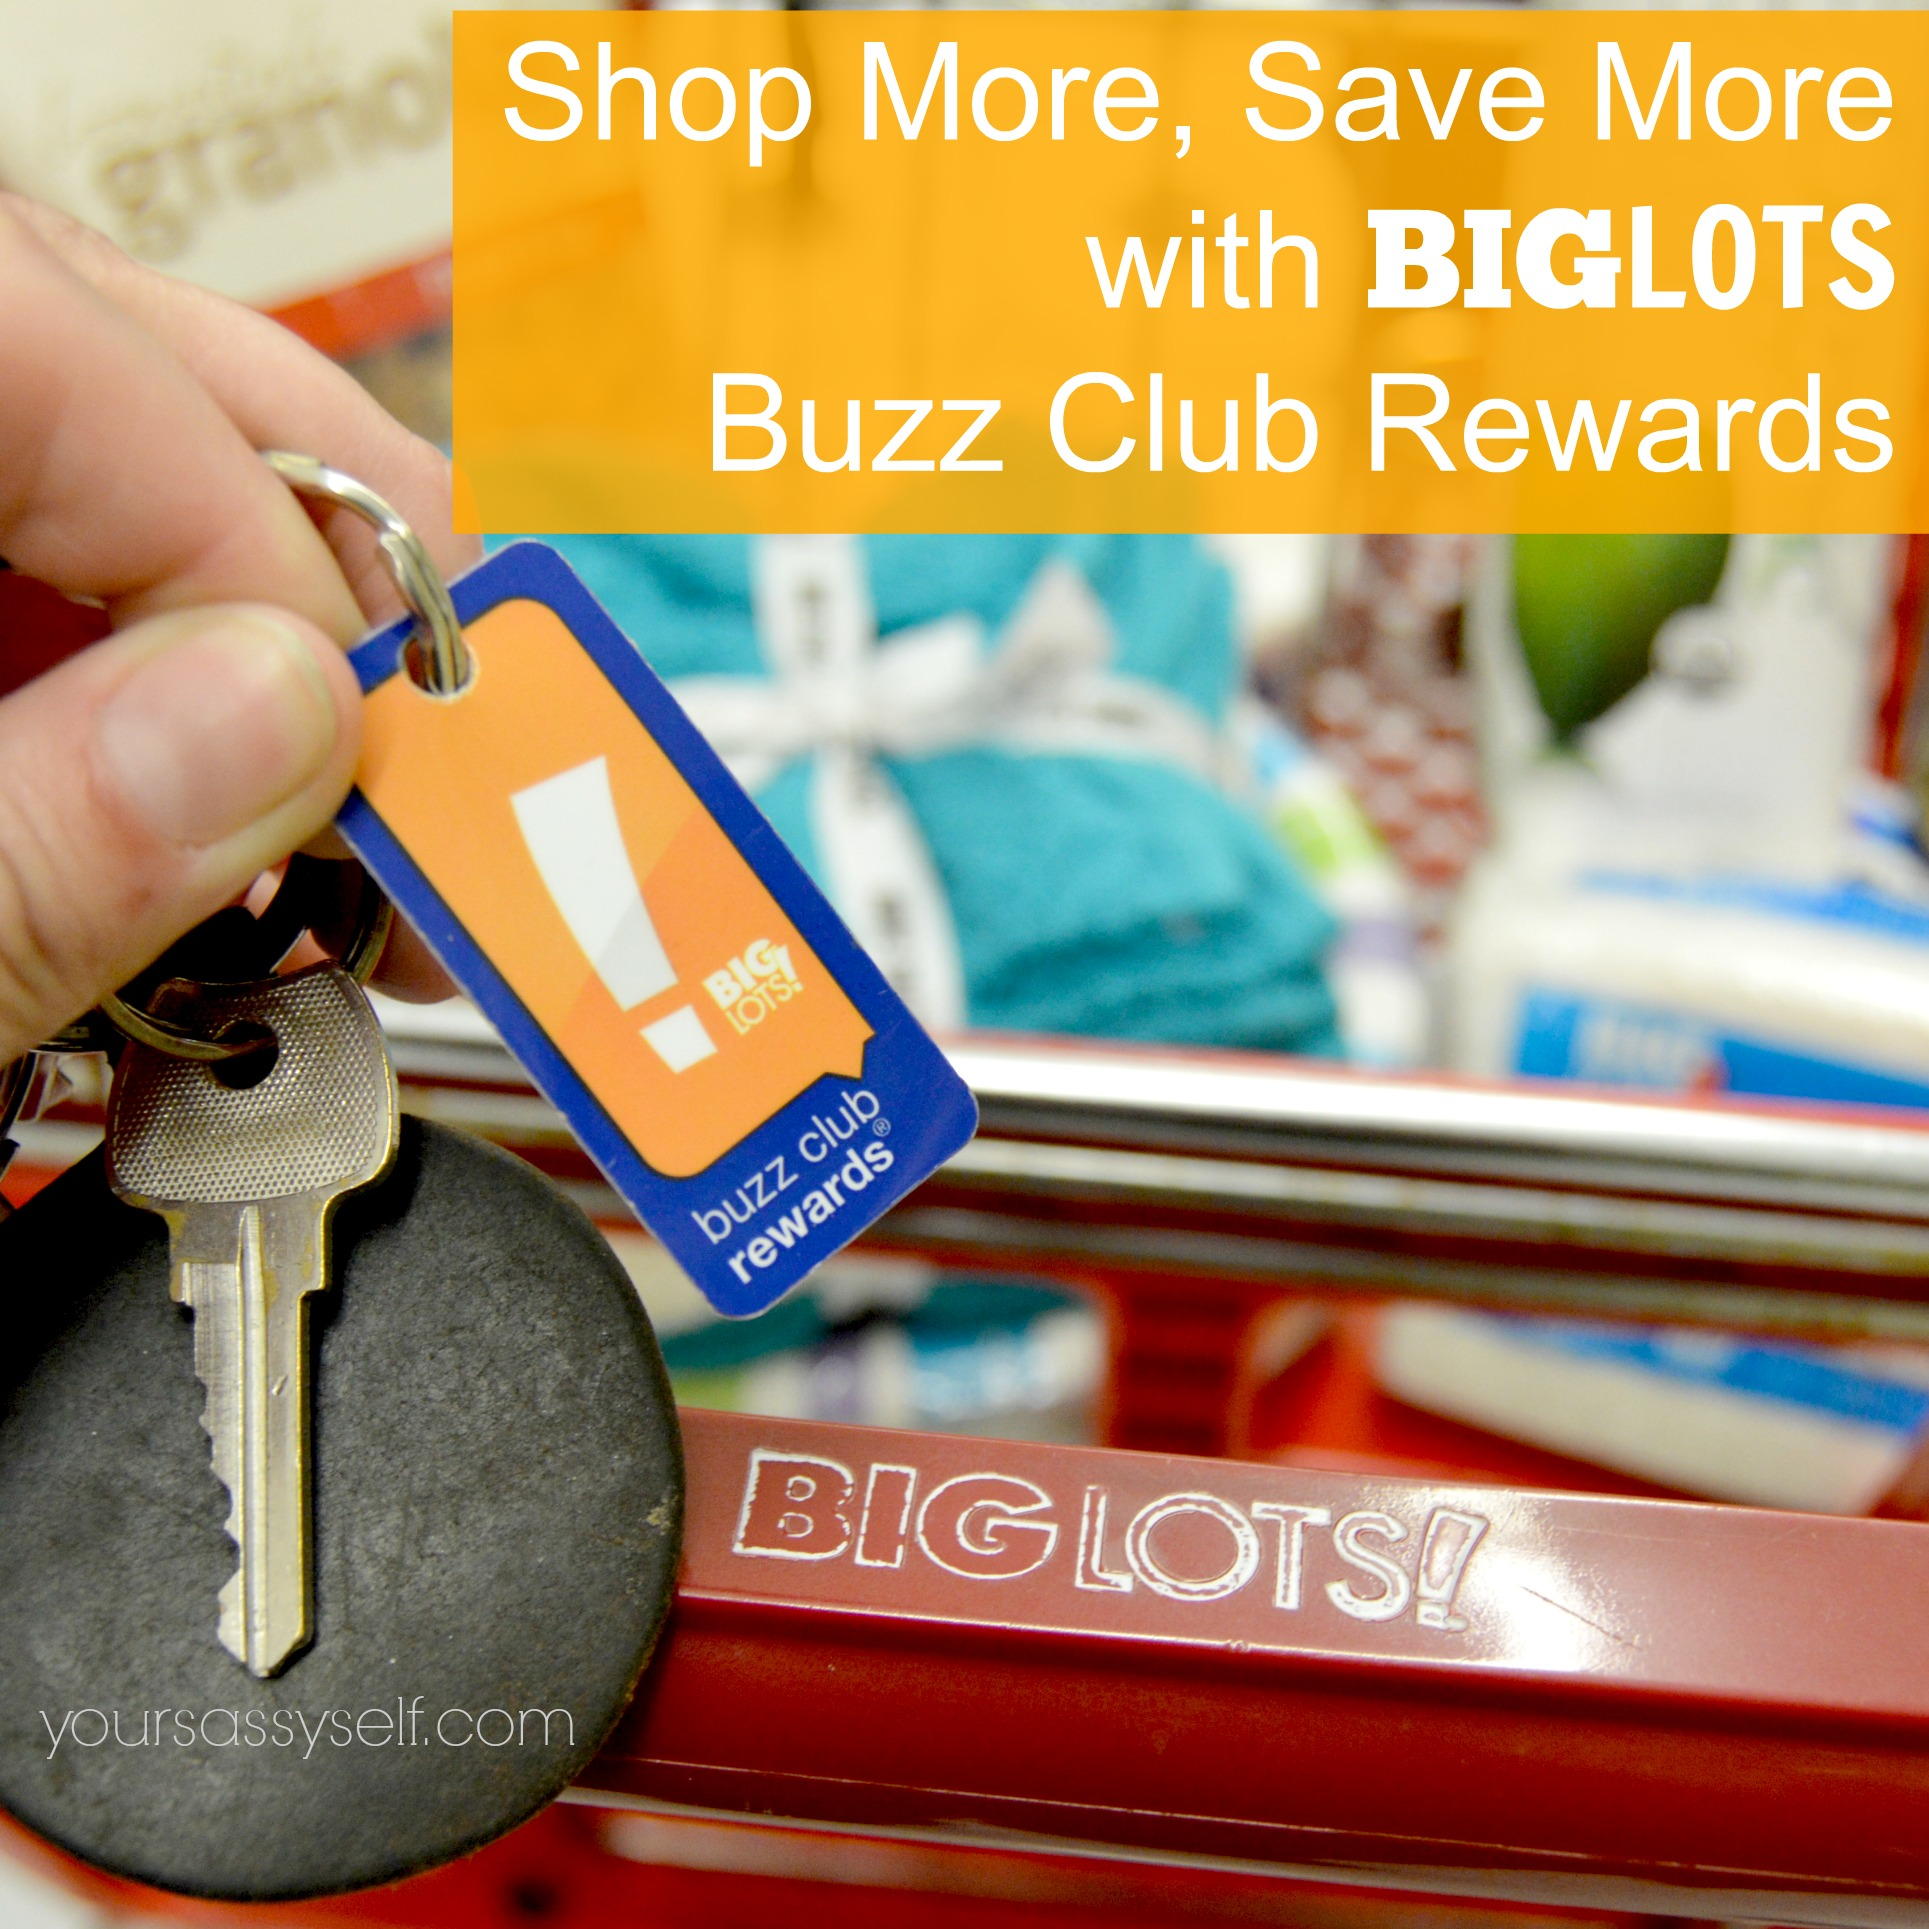 Shop More, Save More with Big Lots Buzz Club Rewards